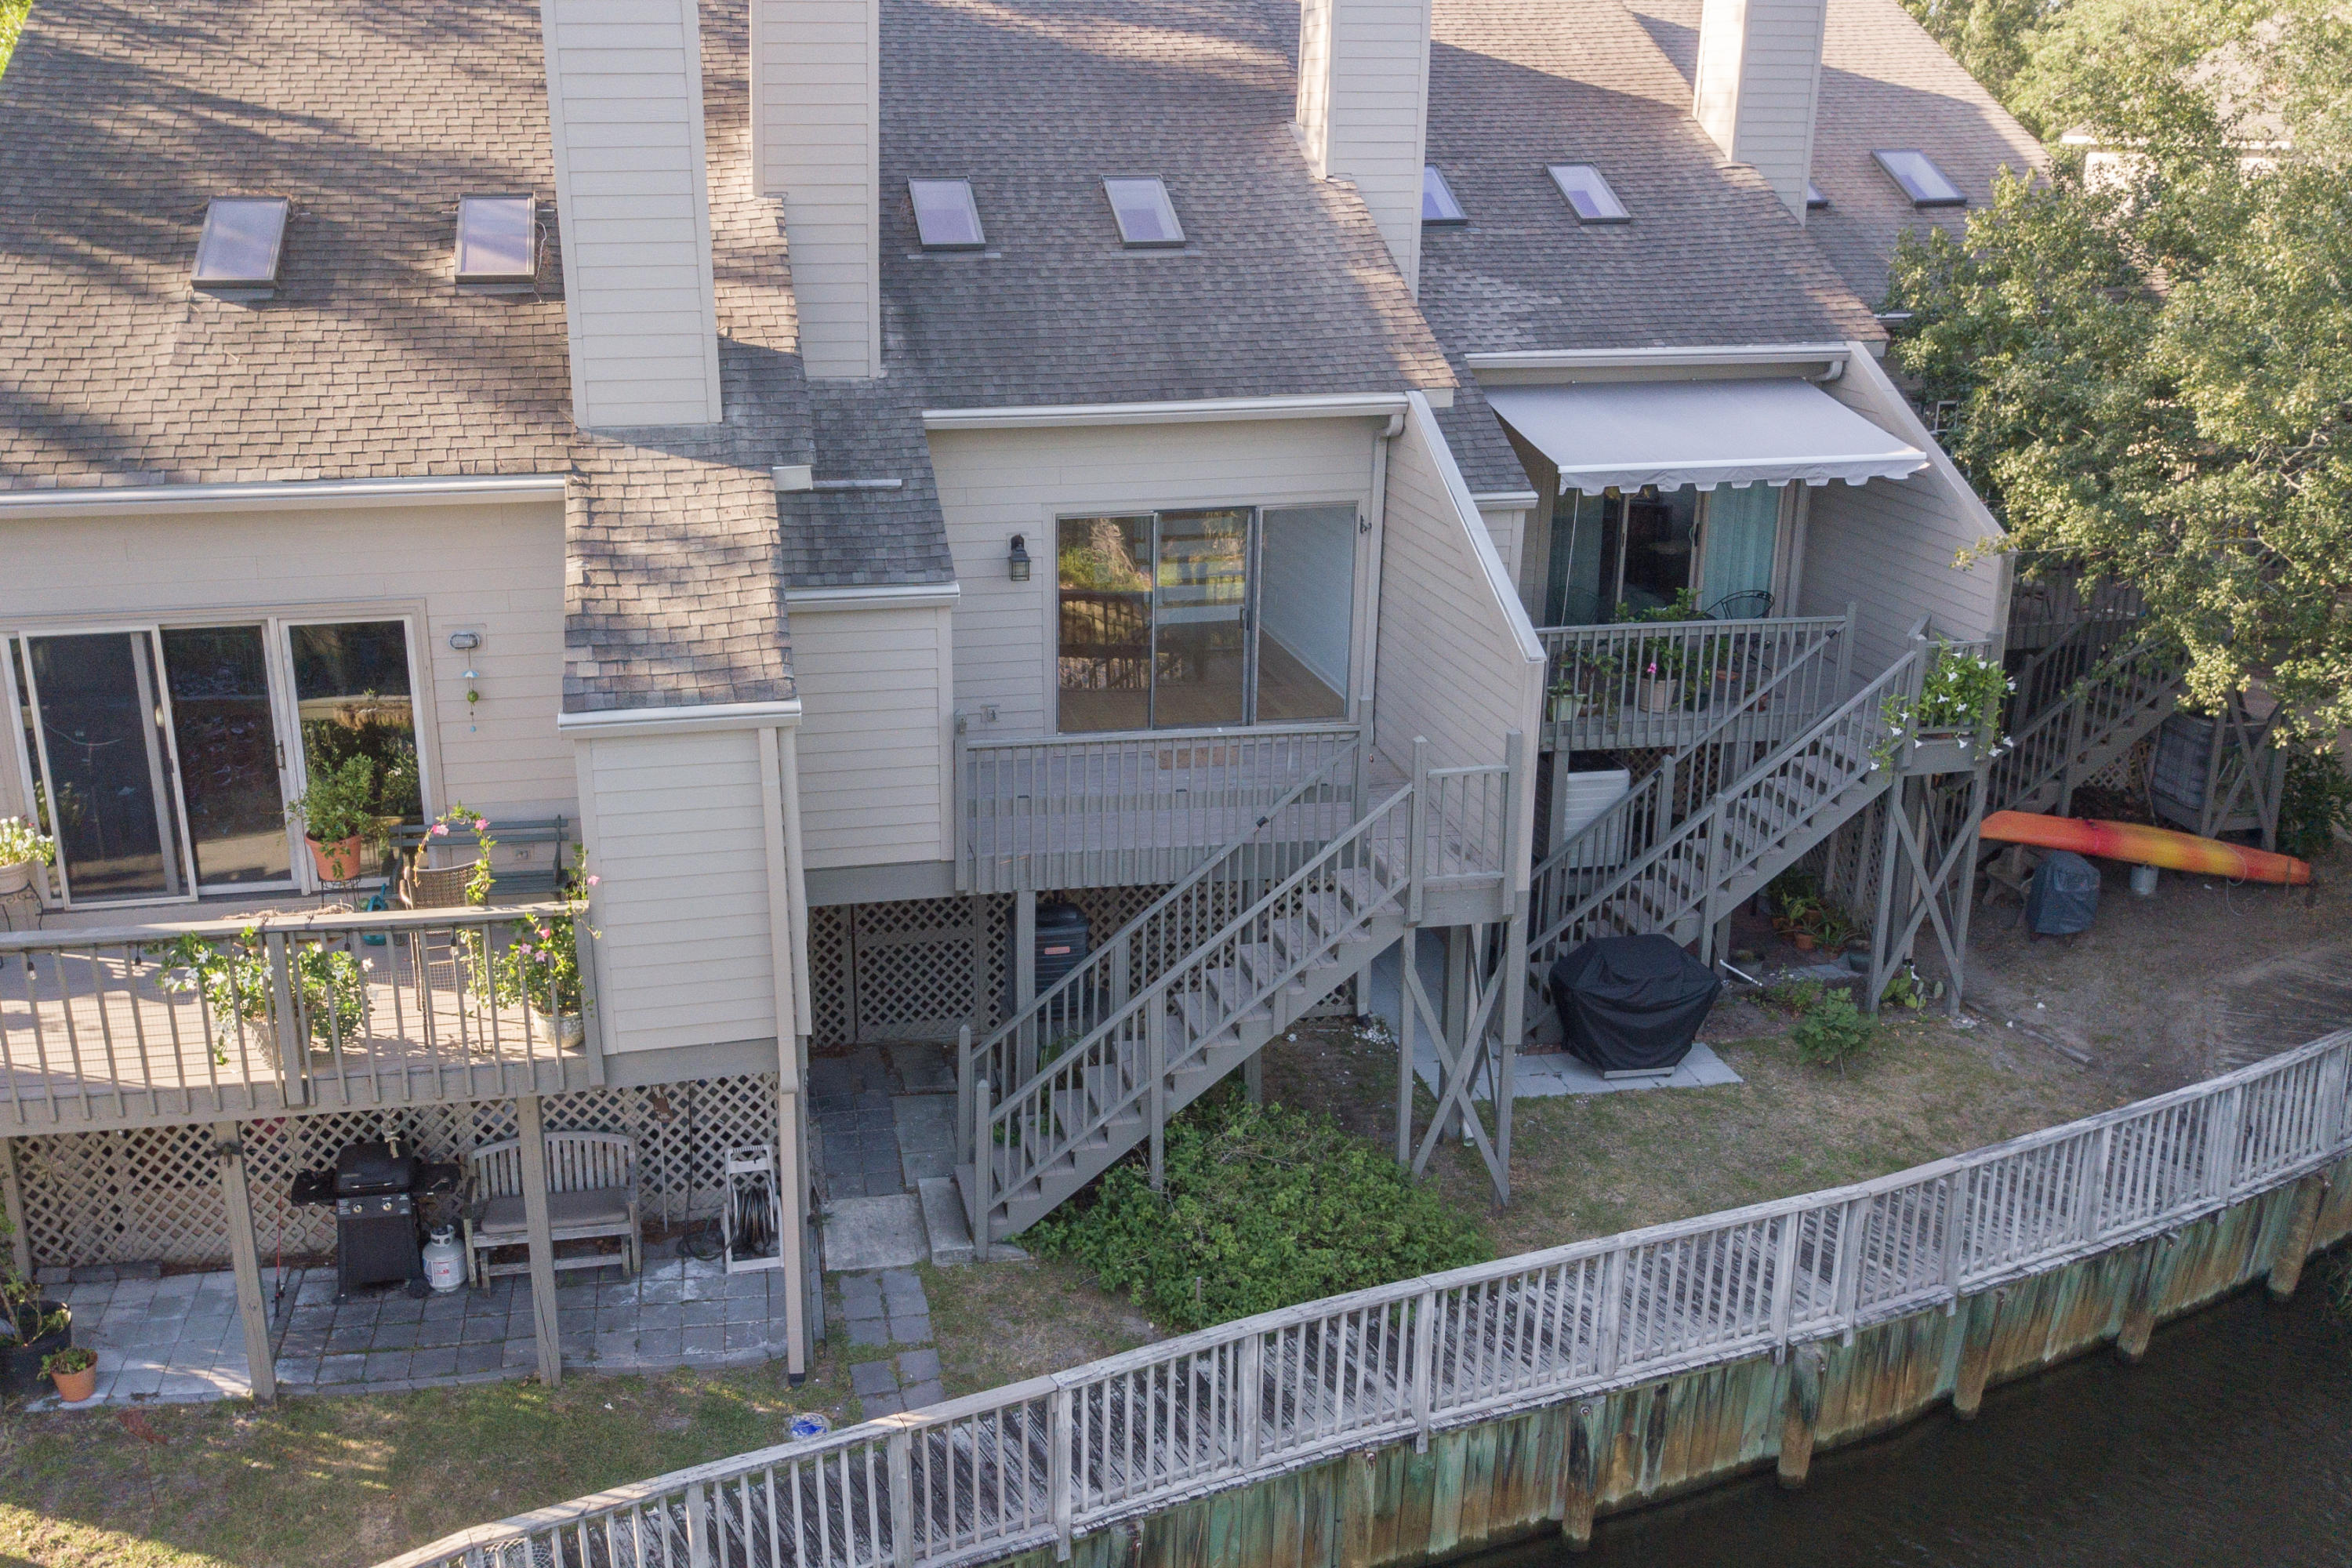 Waterway South Homes For Sale - 134 River Breeze, Charleston, SC - 6